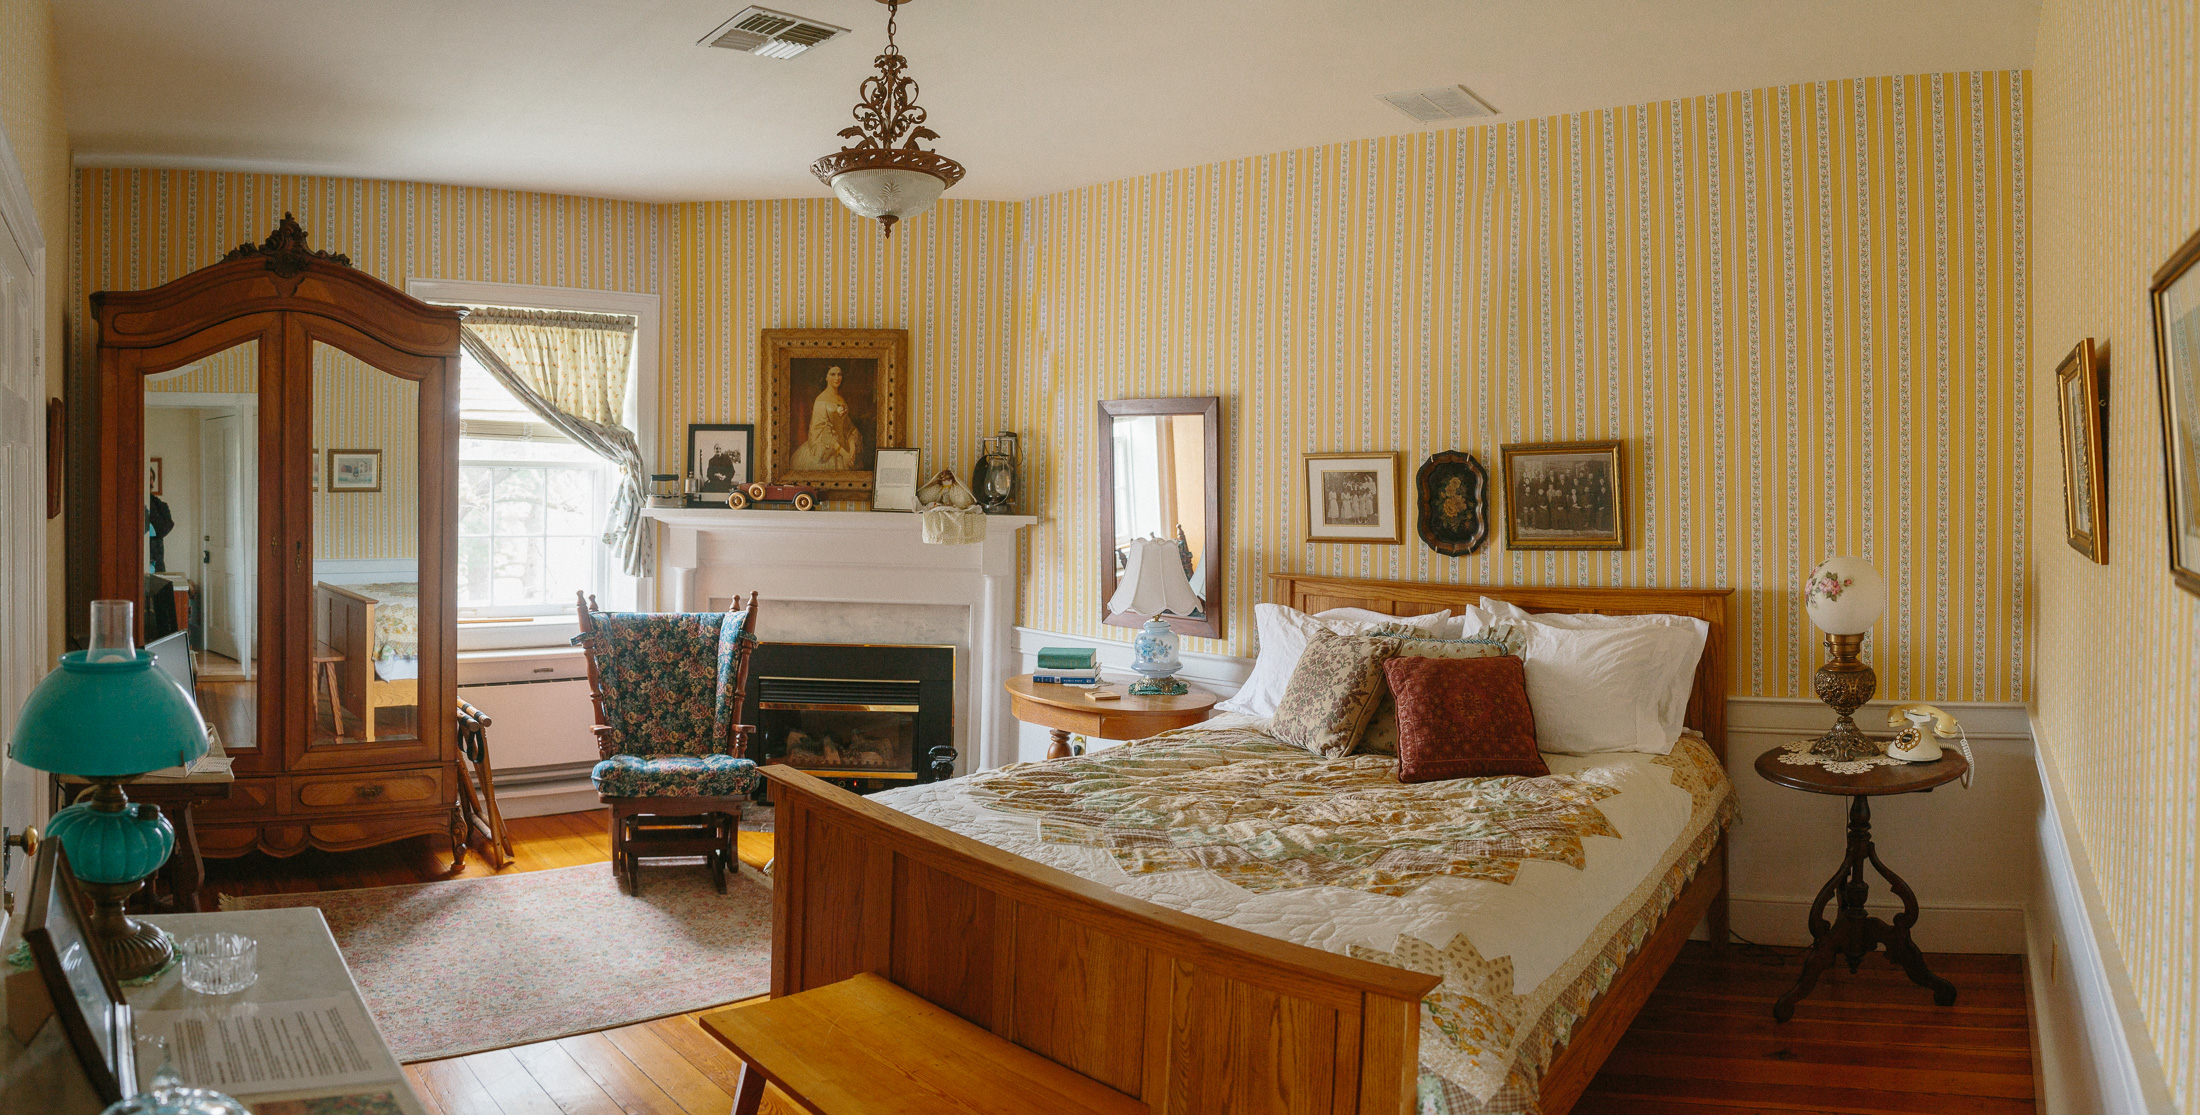 Aunt Emma's Room at Cave Hill Farm Bed and Breakfast - an 1830s historic manor home in the Shenandoah Valley of Virginia